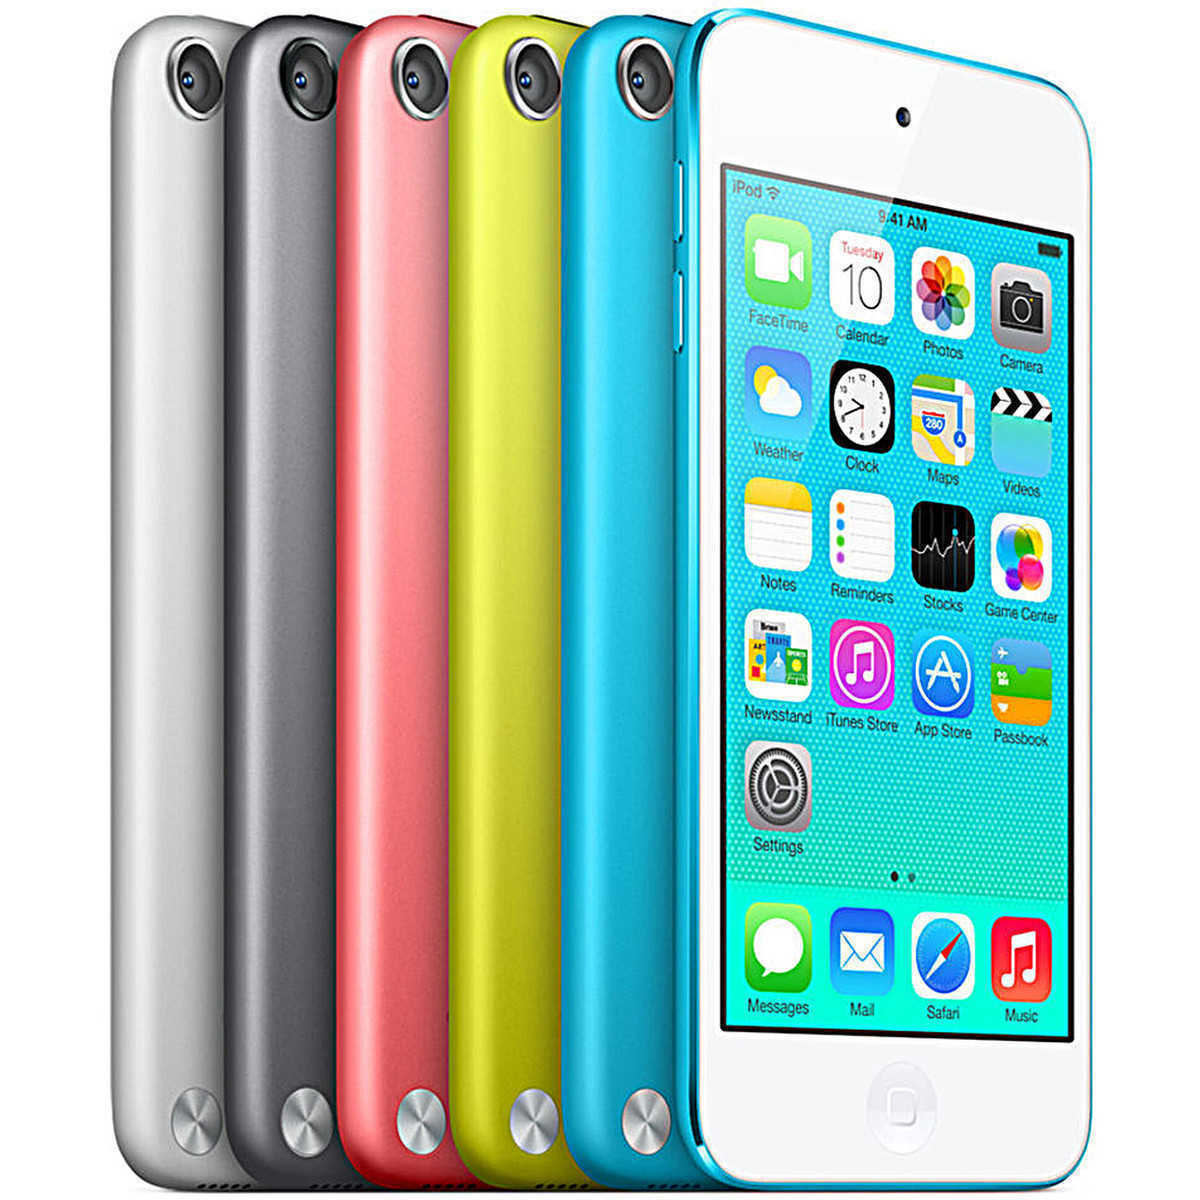 Apple Ipod Touch 5th Generation 16/32/64GB All Colours Tested Fully Functional - $129.99